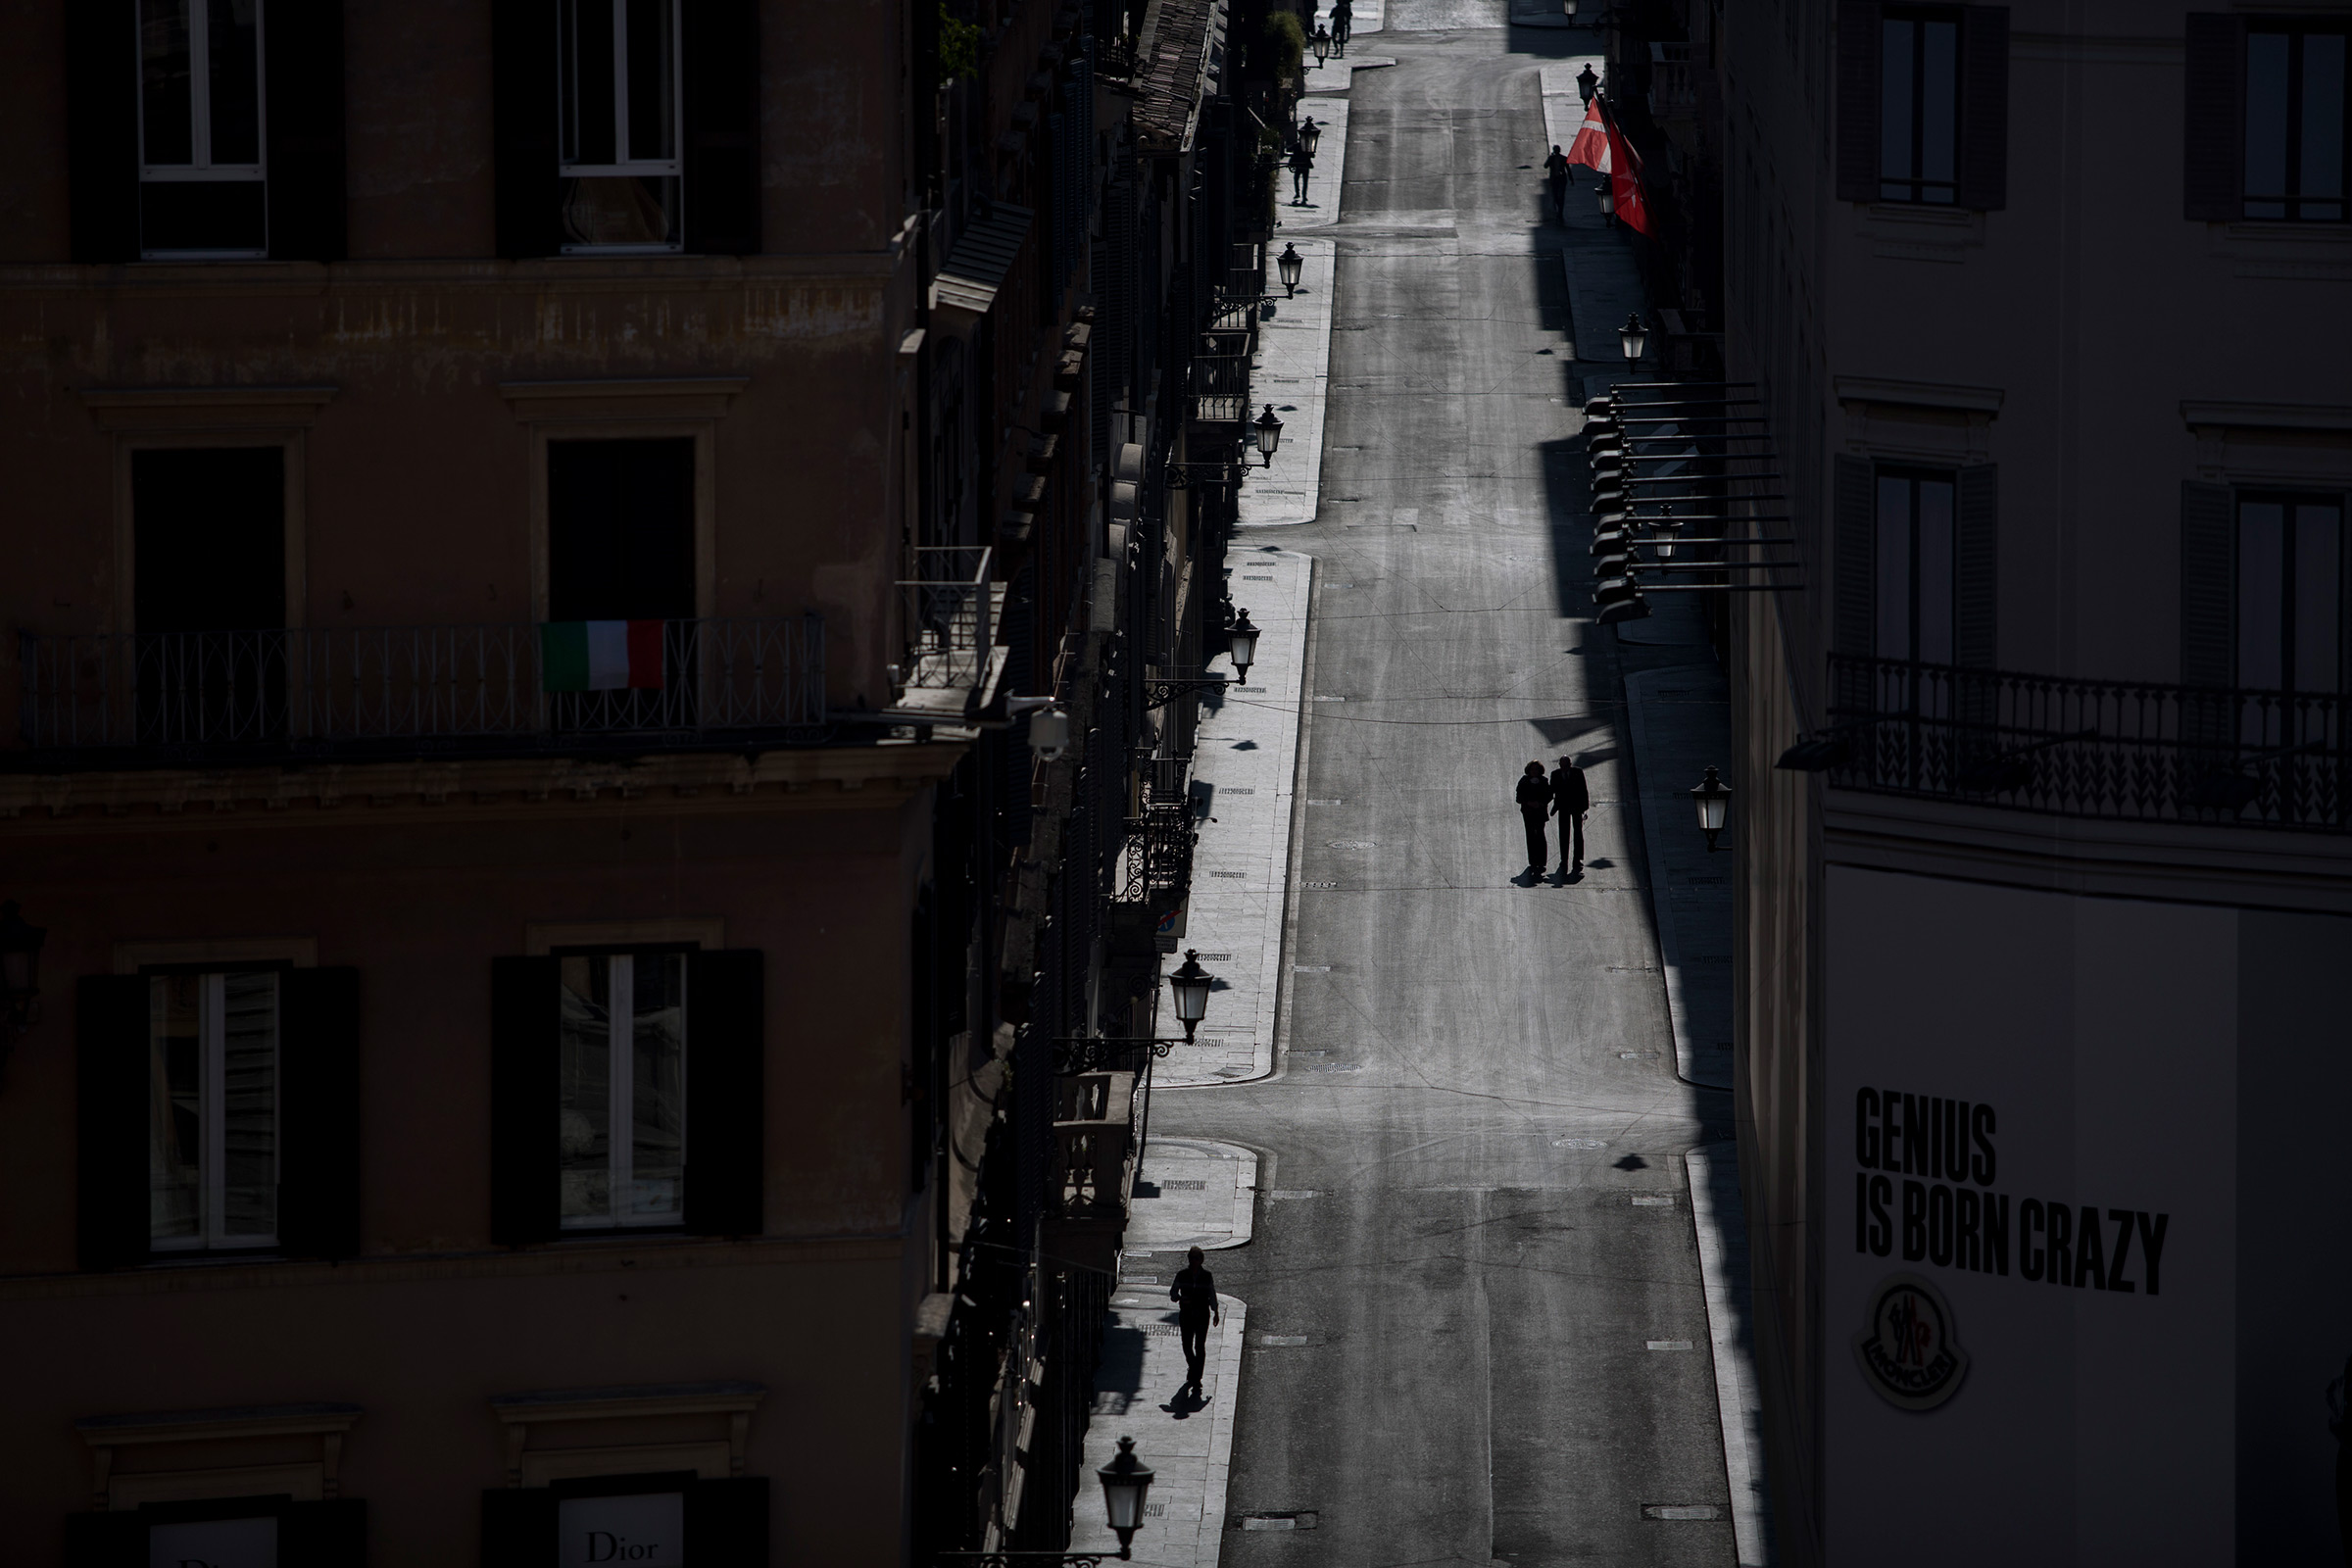 A couple walks in deserted via Condotti in central Rome on April 6, 2020.